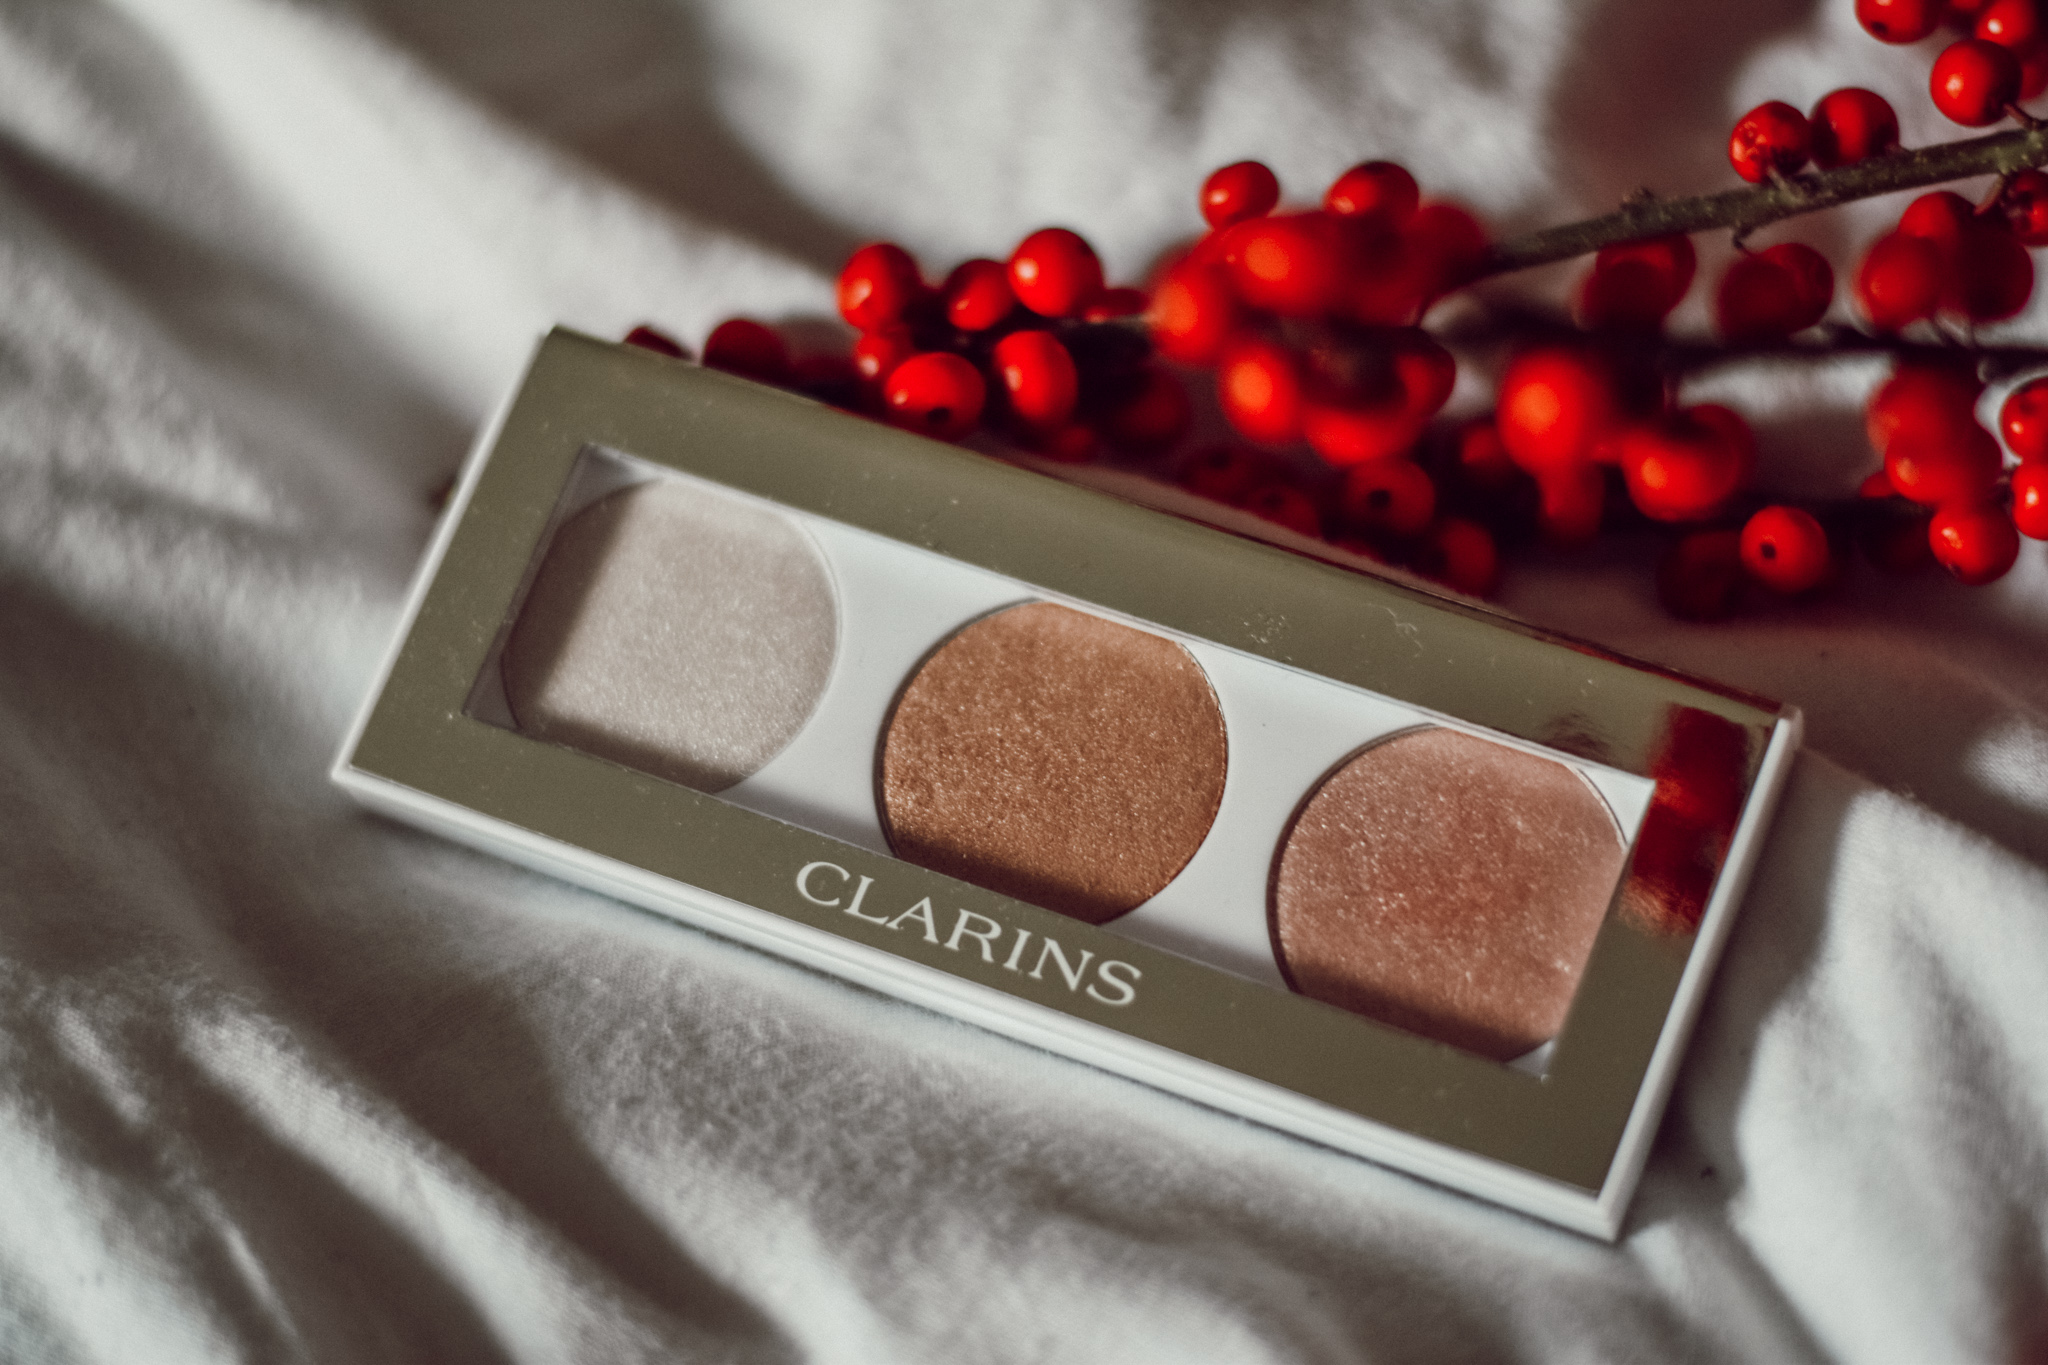 Clarins - Highlighter Trio